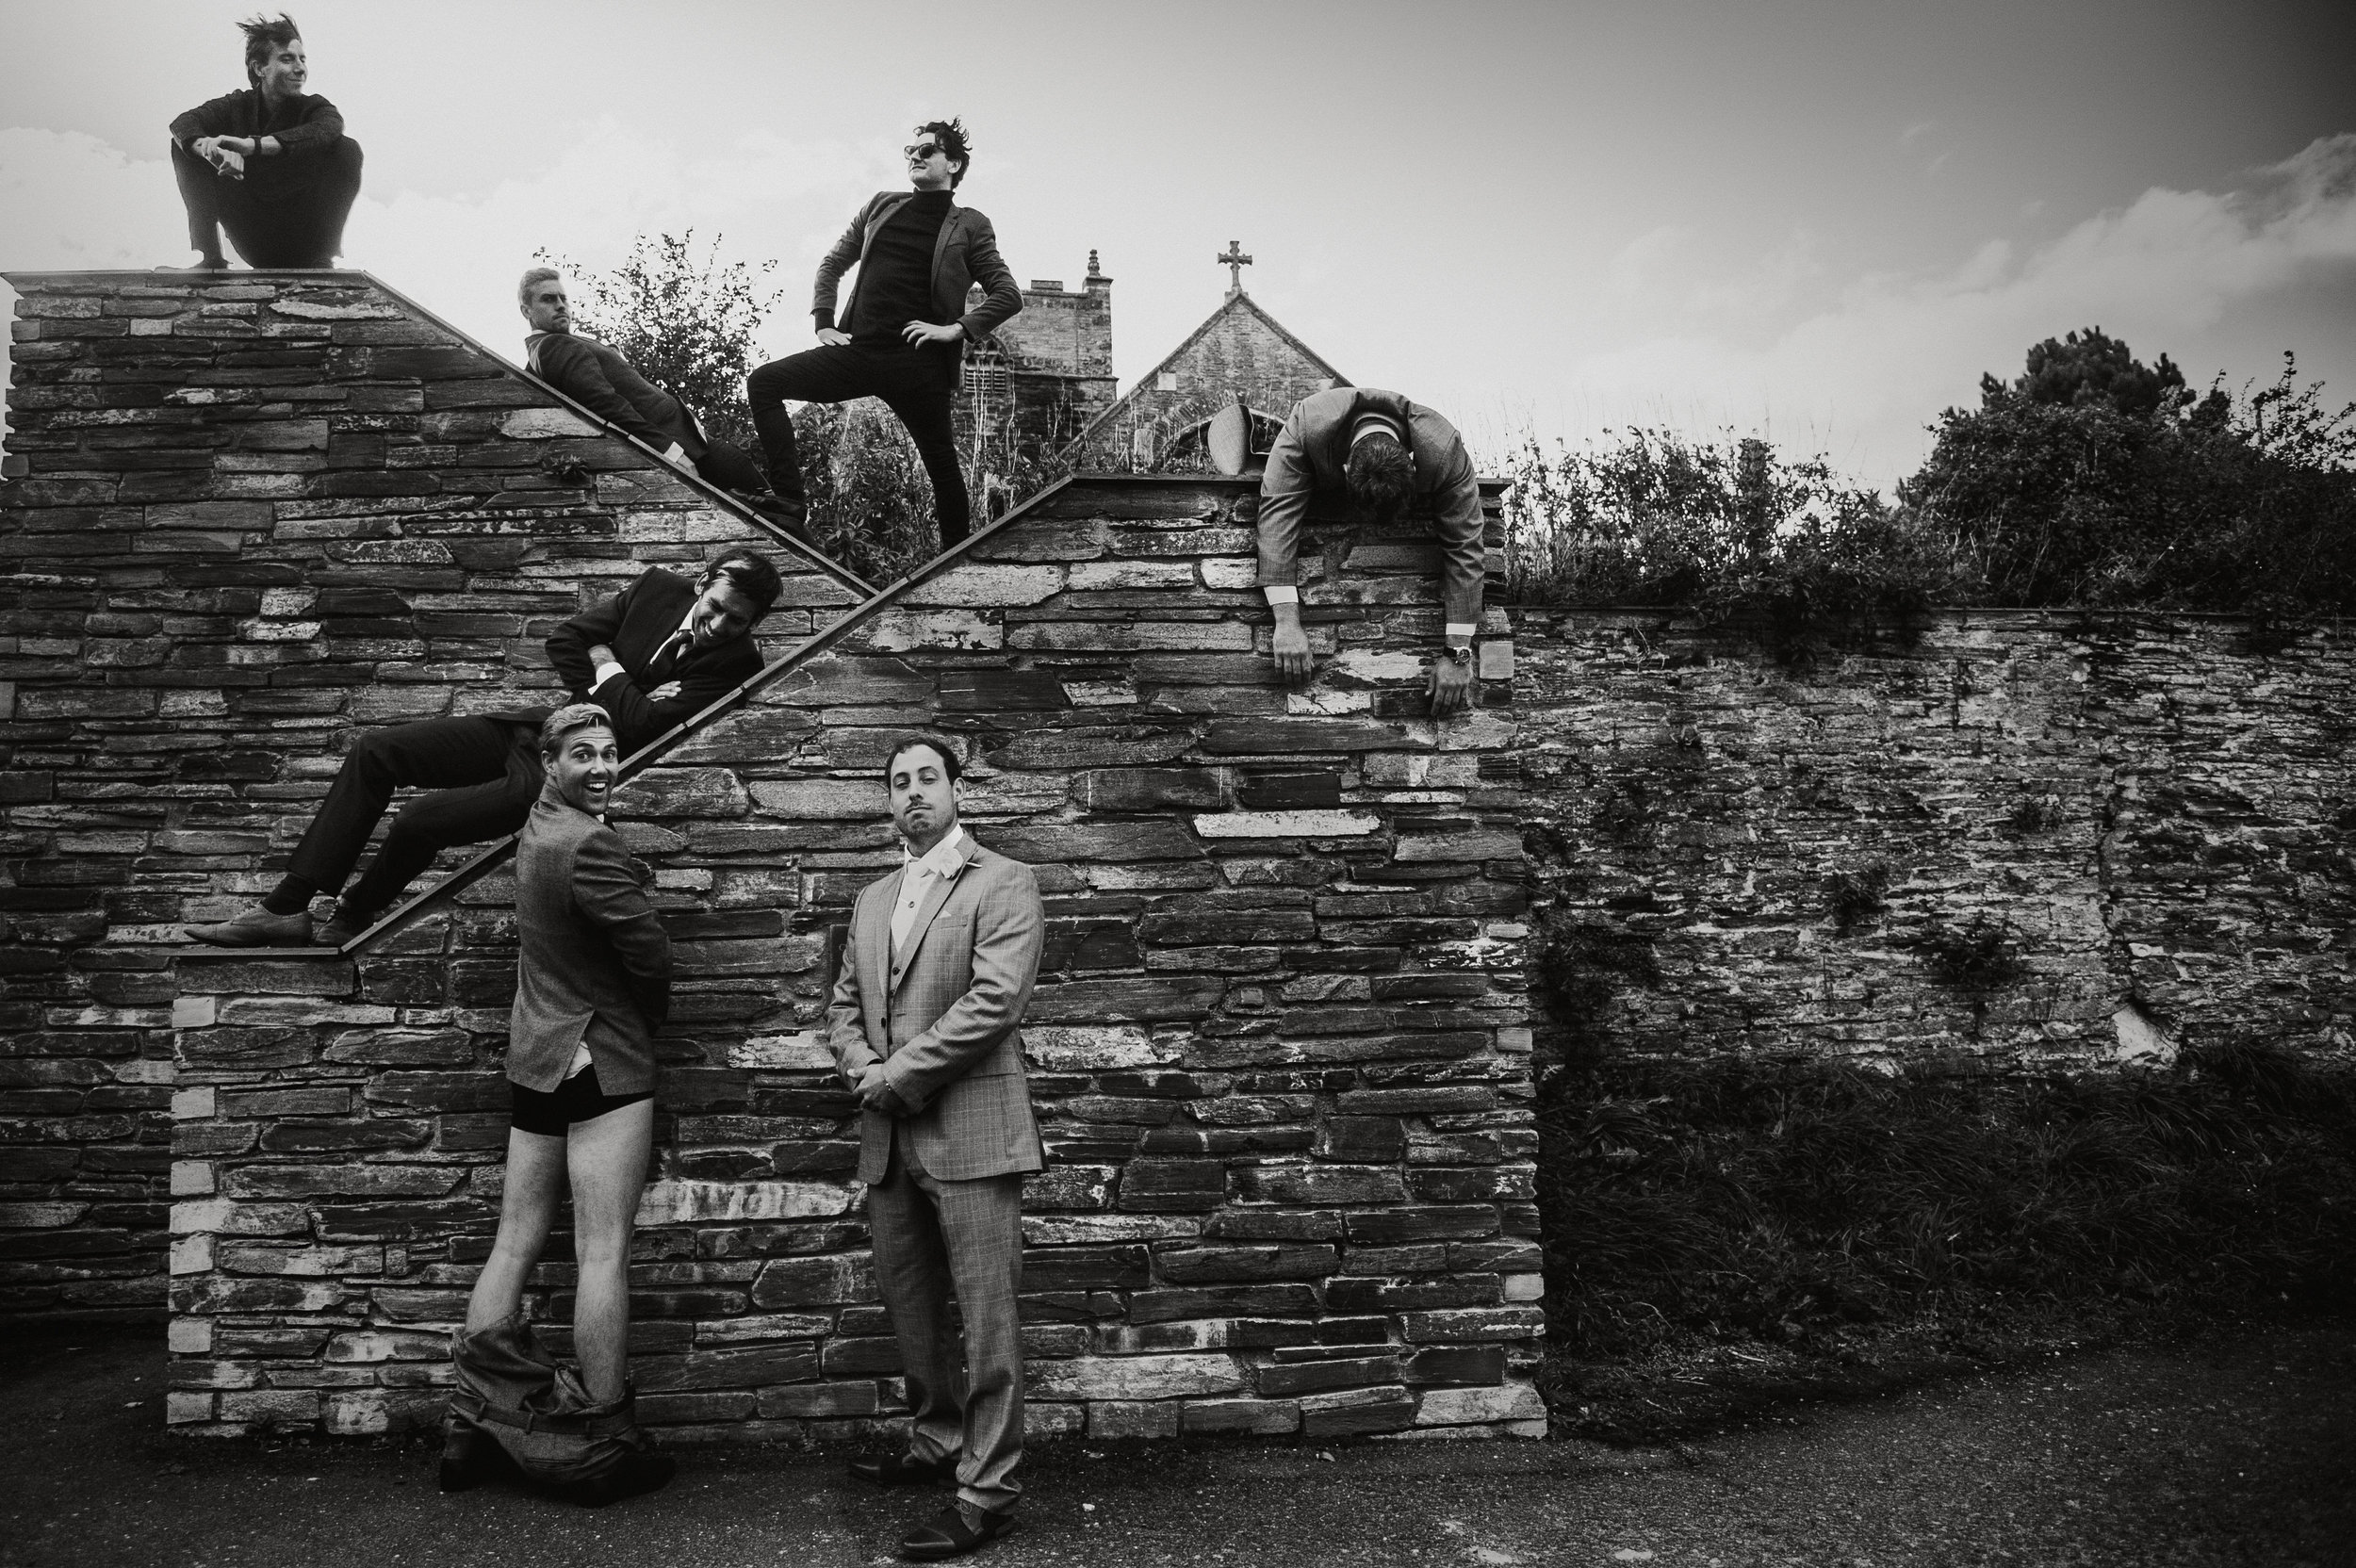 I always photograph wedding groups and these can be fun, classic posed, whatever floats your boat :)